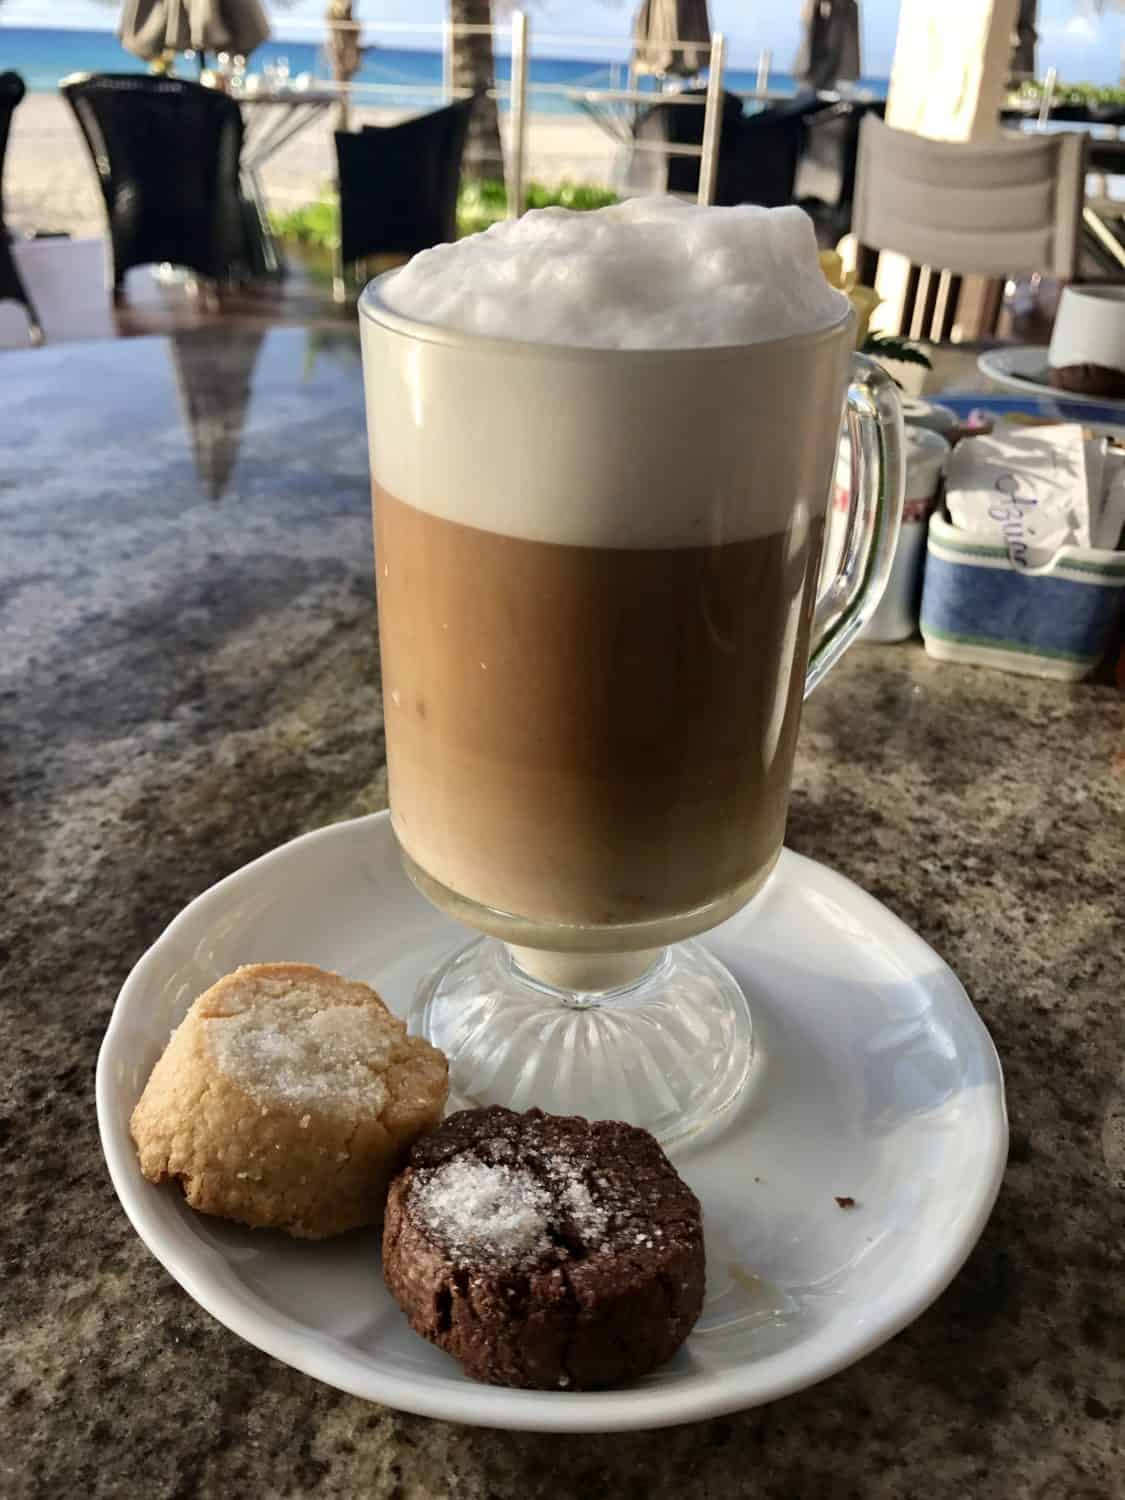 Beautiful caffe latte and biscuits in the morning